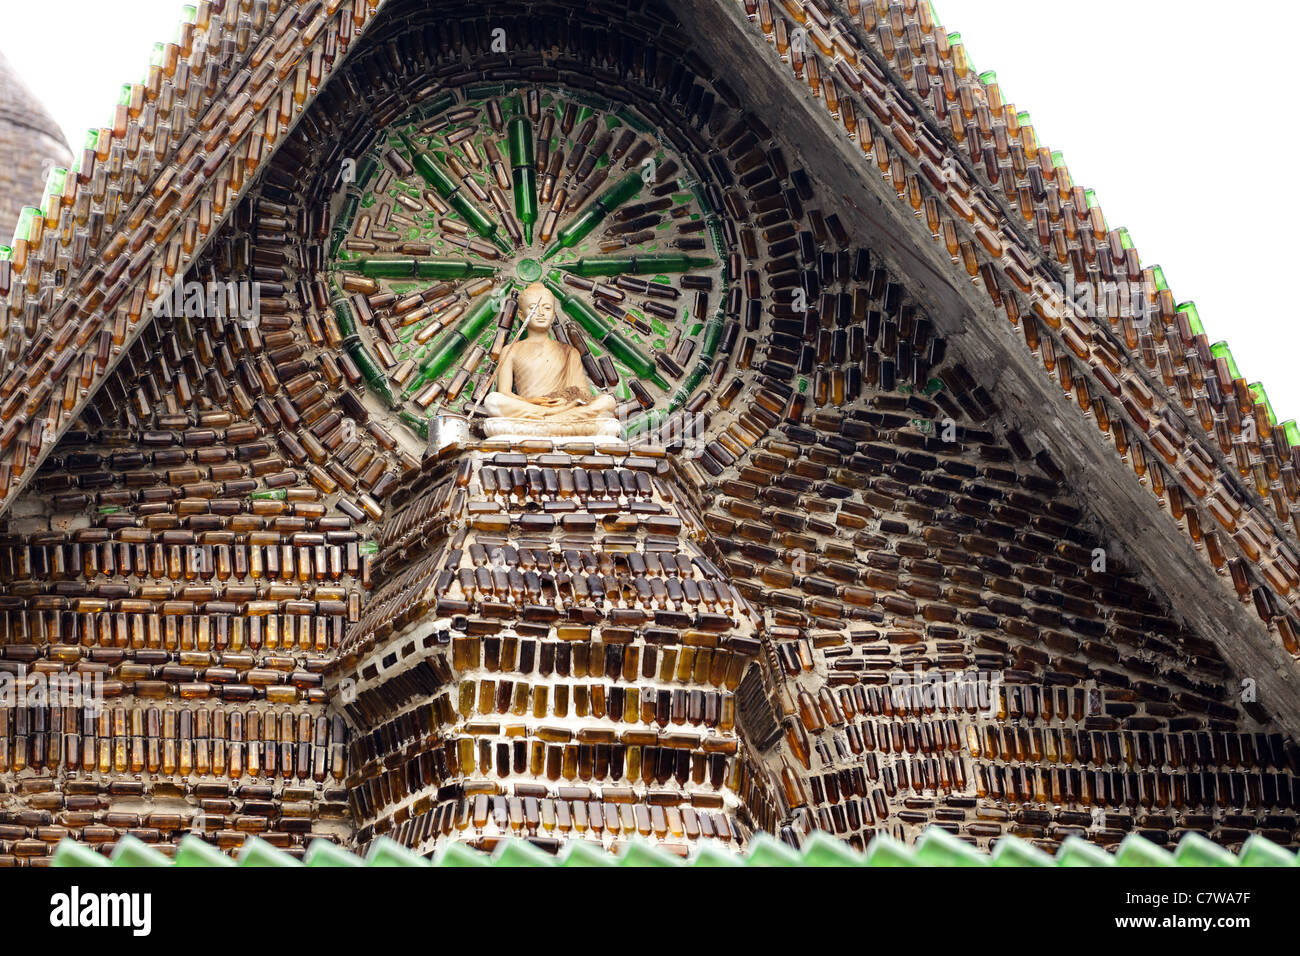 wat pa maha chedio kaew the one million bottle temple